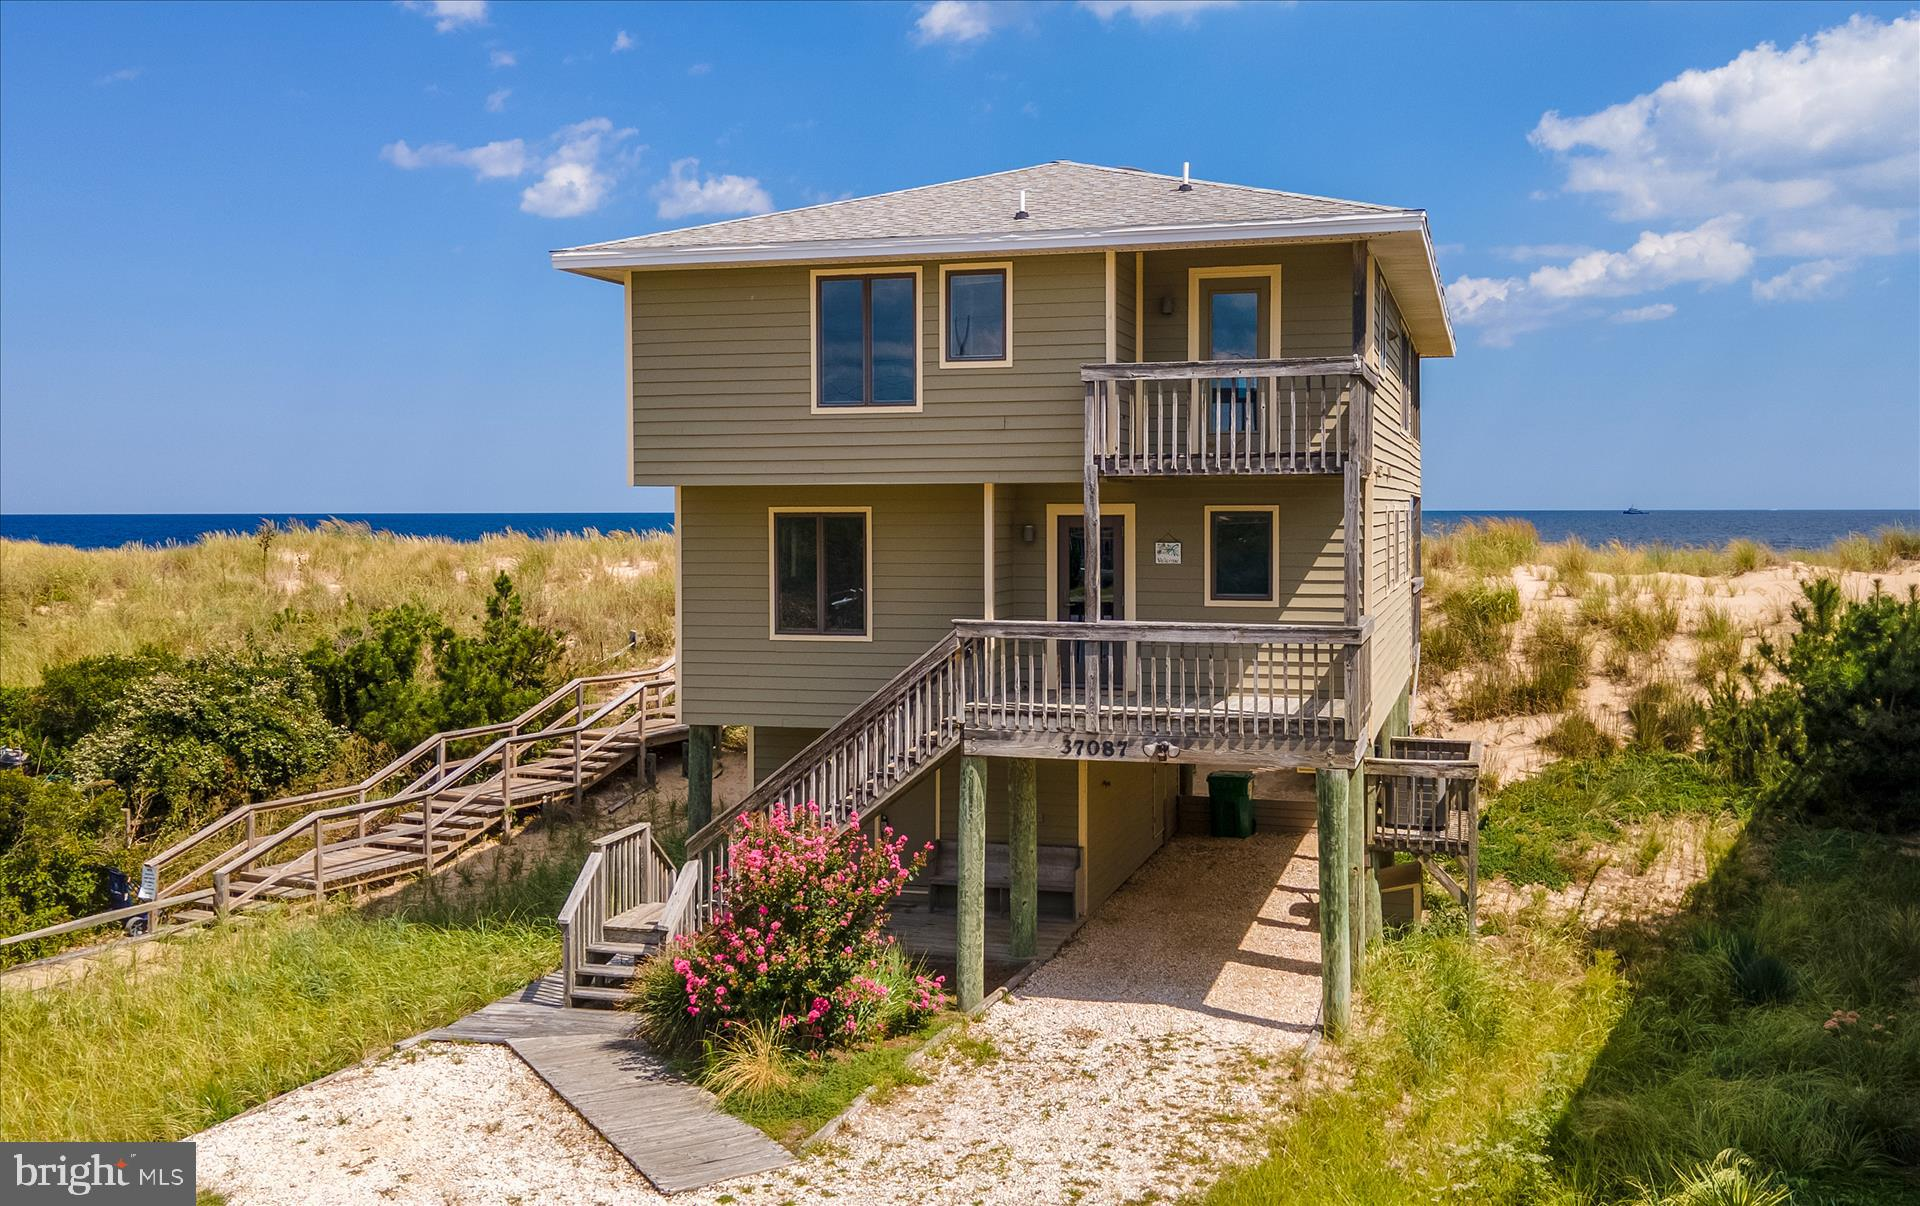 Rare opportunity awaits! A meticulously maintained oceanfront property in the gated community of Fenwick Acres. Relax with your morning cup of coffee on the spacious deck or eat dinner inside the screened-in porch while enjoying unbeatable views of the gorgeous Fenwick Island State Park beach. The inverted floor plan allows for maximum ocean views from the kitchen and living rooms and the open layout provides the perfect space for entertaining.  With 3 bedrooms on the main floor and 1 on the top floor, there is plenty of room for friends and family.  Additional features include 2 wood burning fireplaces, a new HVAC in 2016, 2 secure storage sheds, and a full outdoor bathroom, perfect for those long days on the beach. Just a short bike ride away from the shops and restaurants of Fenwick Island, this home is a must-see!